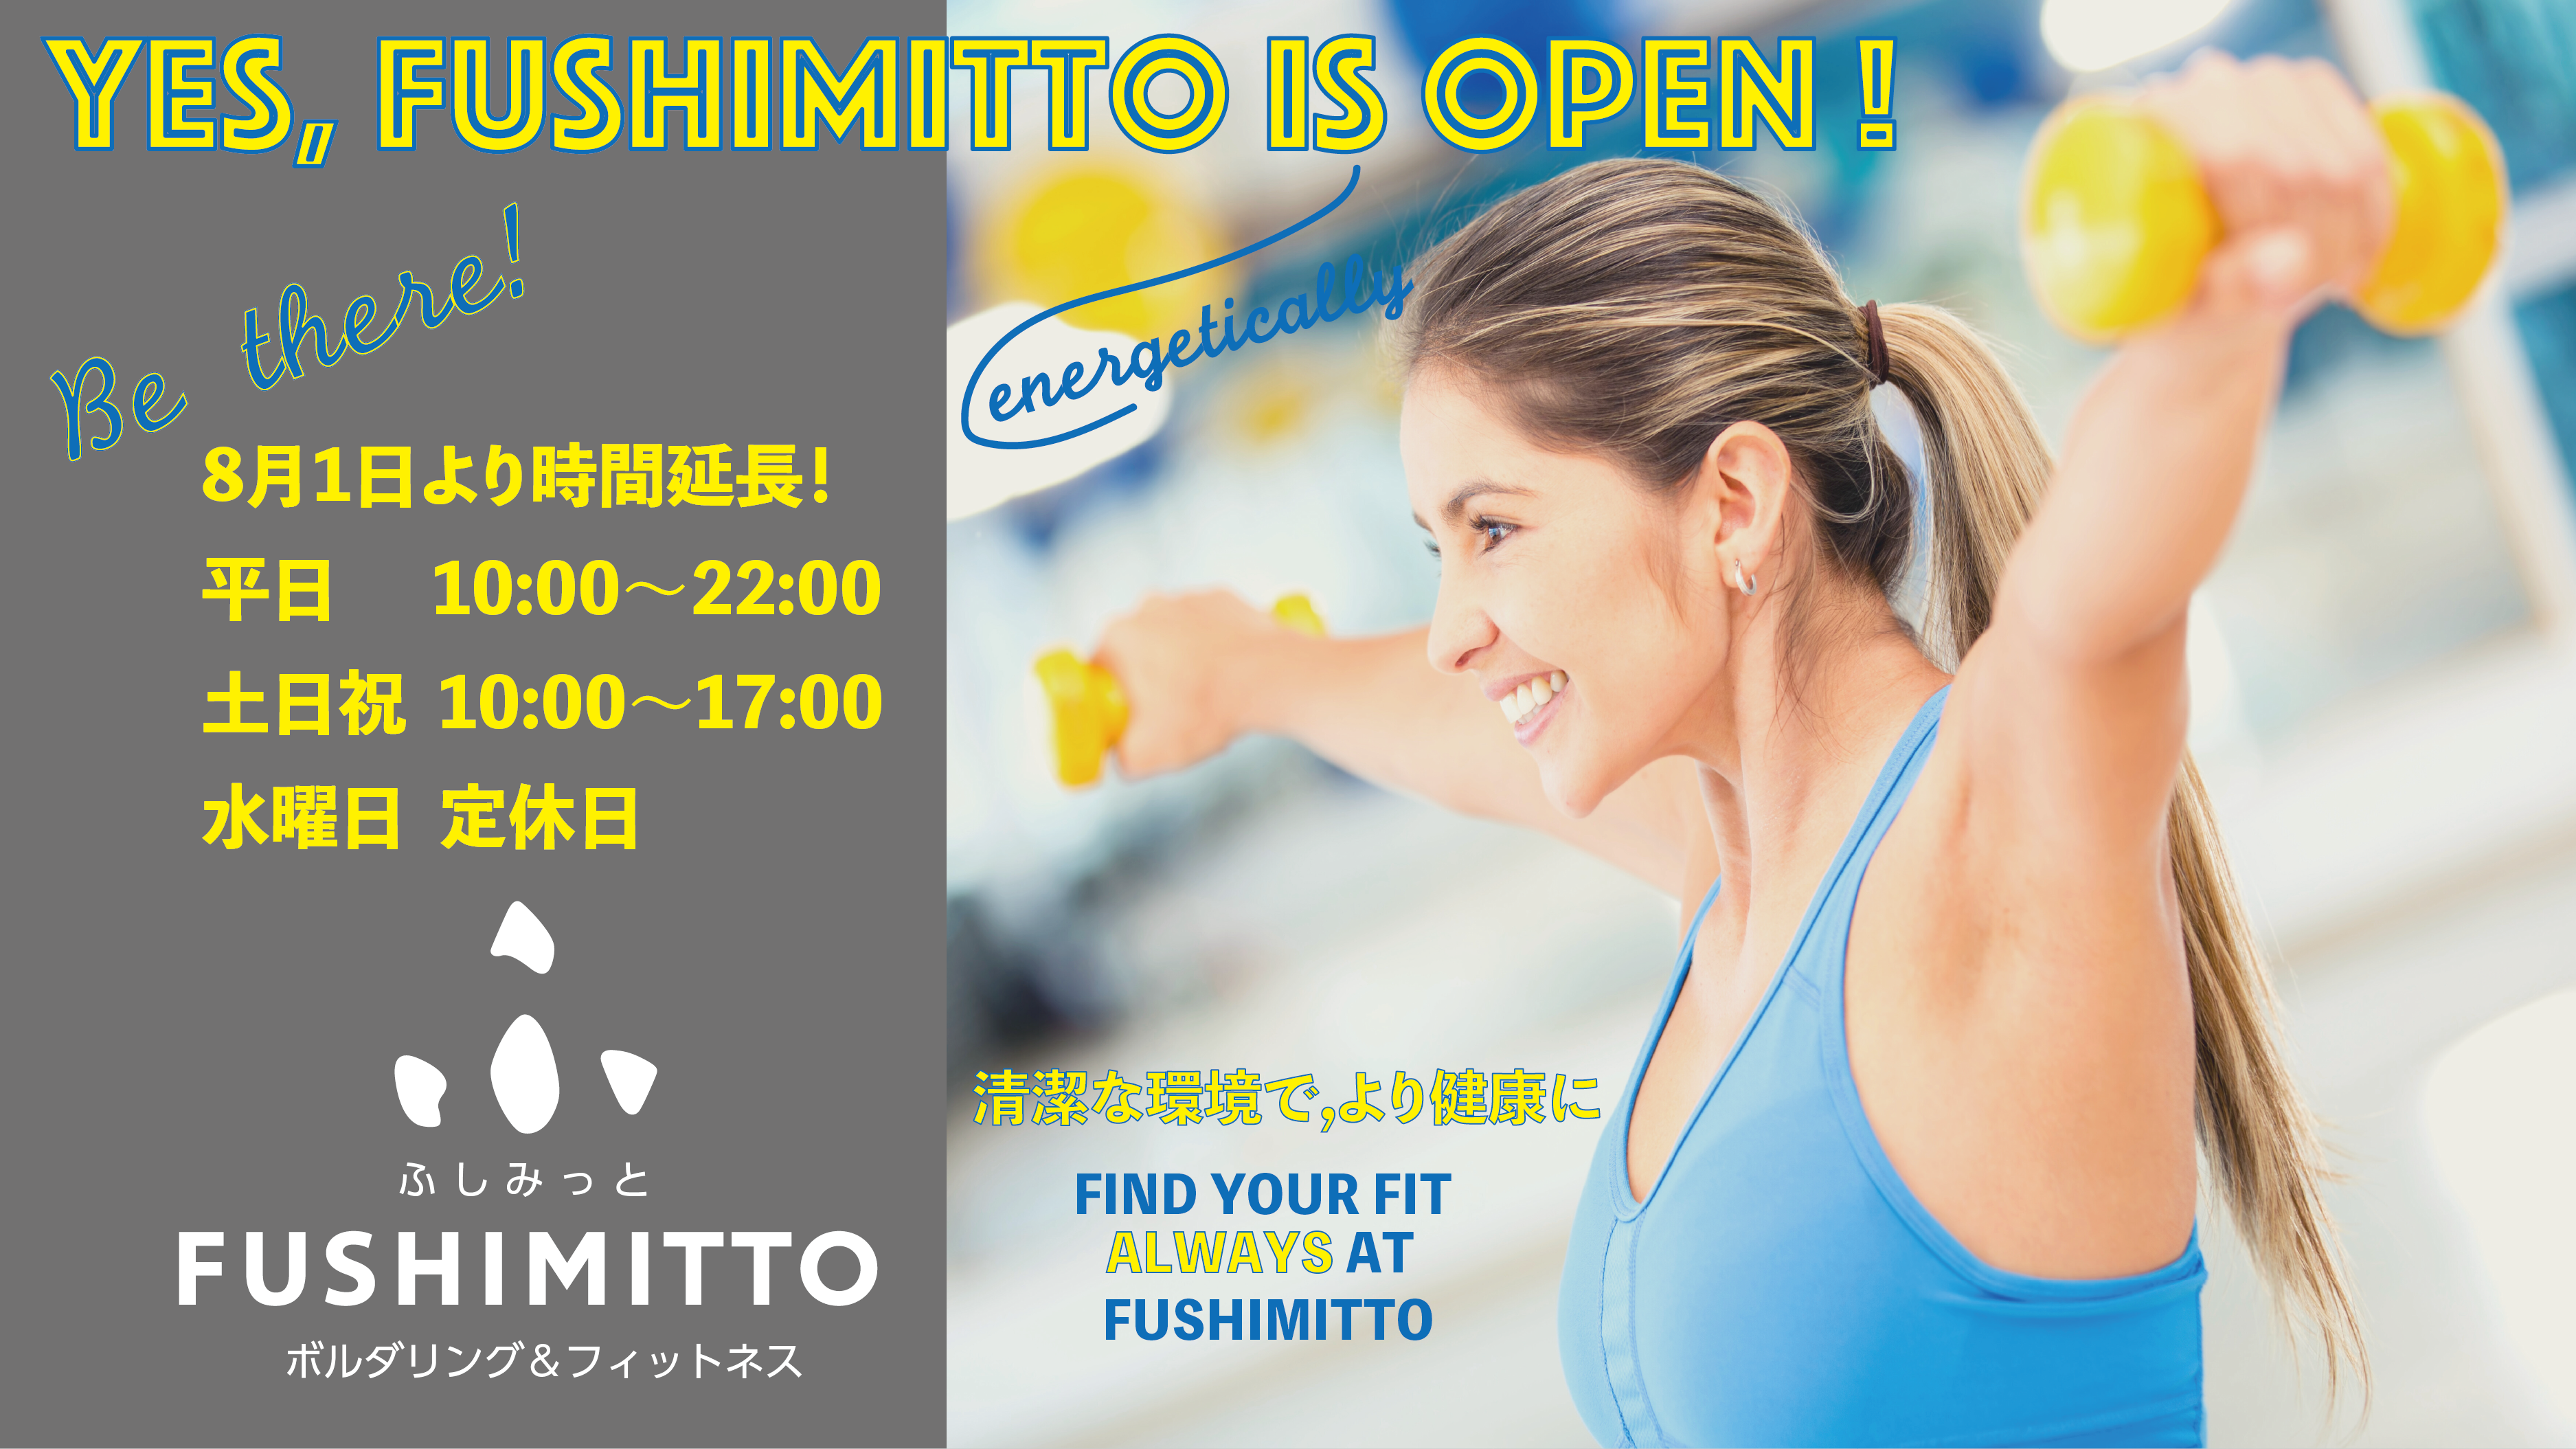 Yes FUSIMITTO is Open